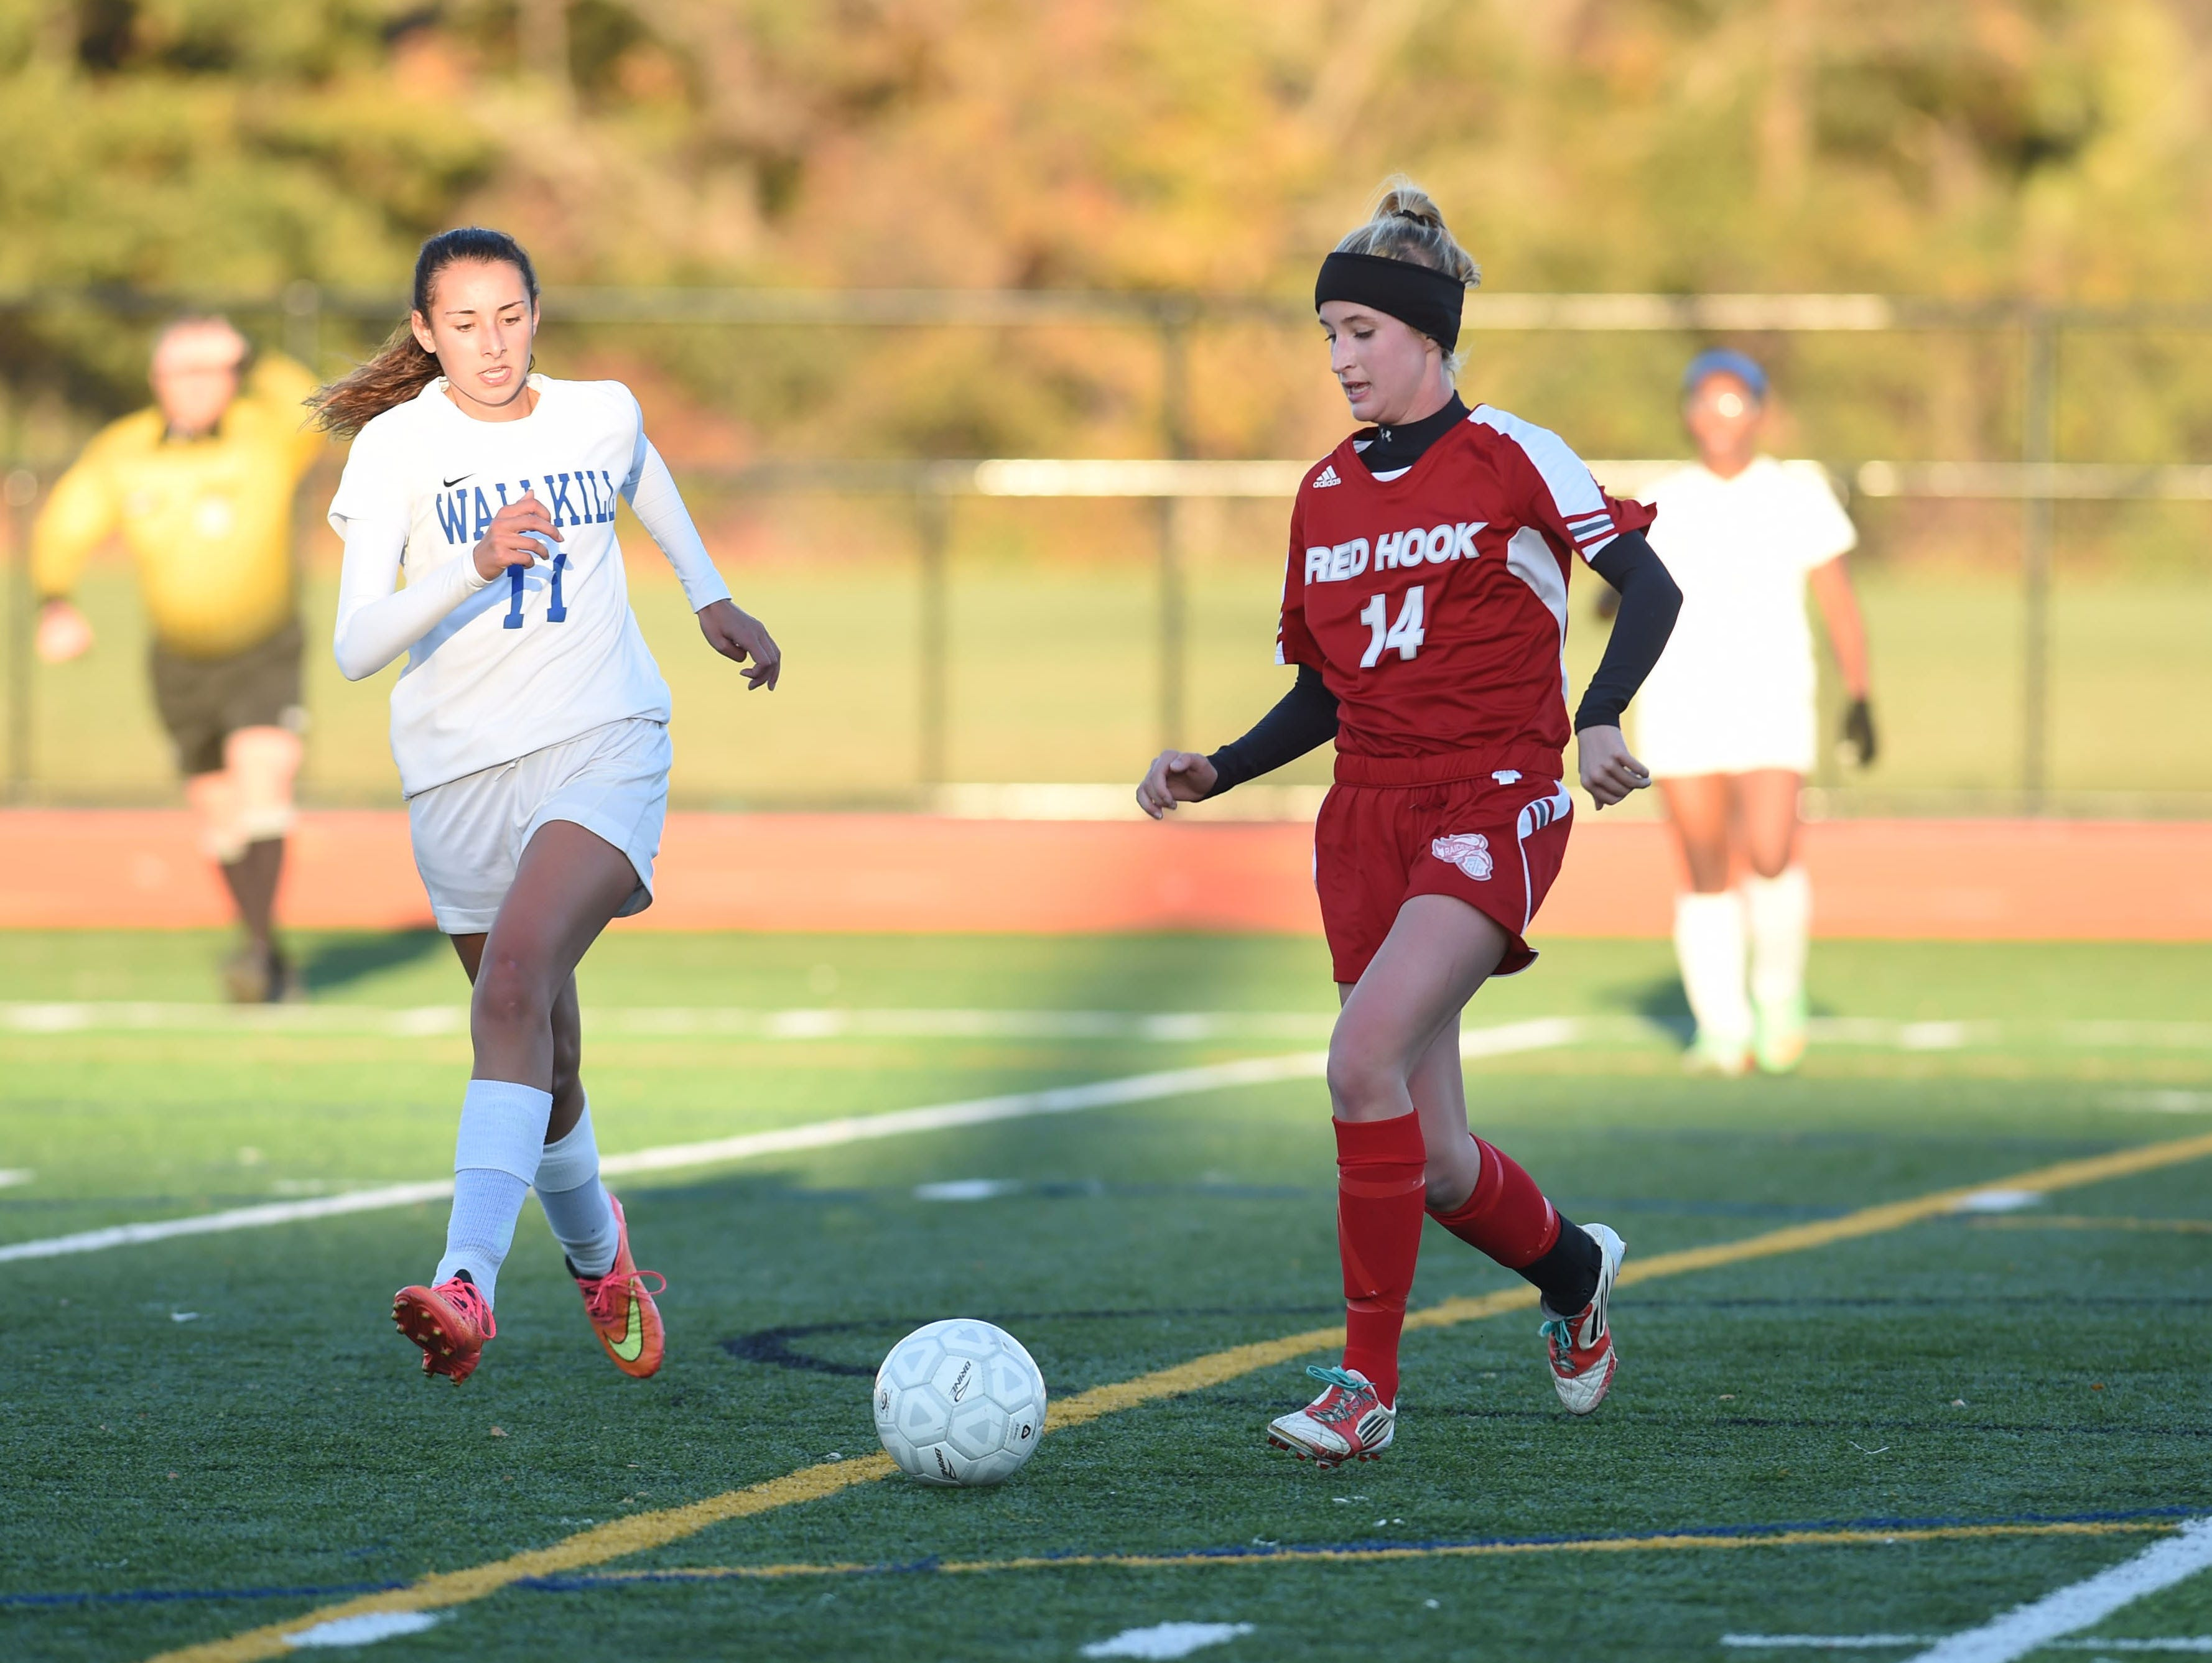 Red Hook's Claire Dyal, right, takes the ball downfield against Wallkill during the MHAL semifinal game at Franklin D. Roosevelt High School last year. Red Hook and Wallkill will meet again in the MHAL semifinals on Monday.